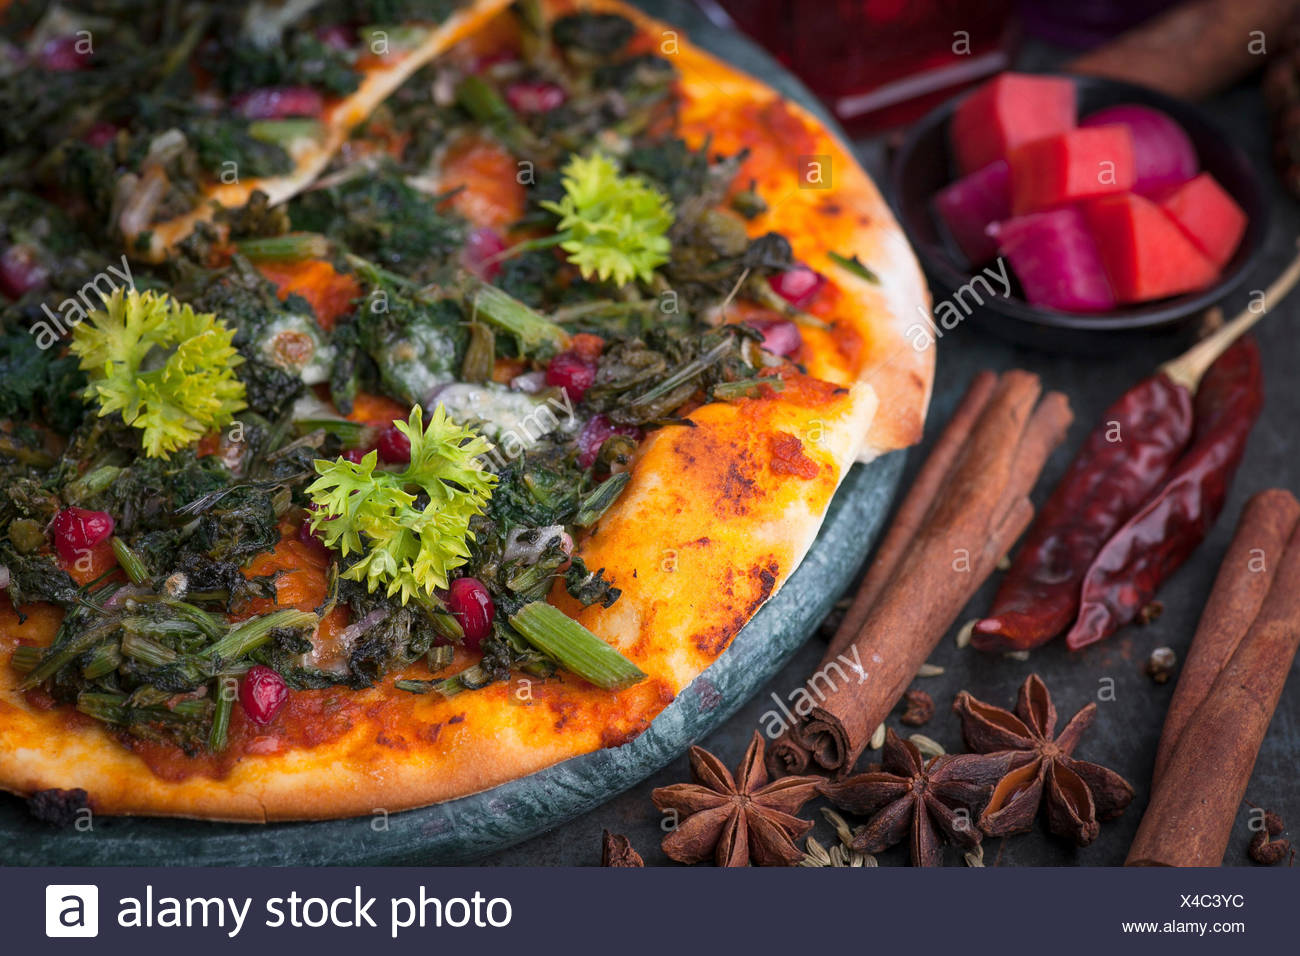 An Arabian manakish bread snack with herbs and spinach. Arab version of pizza - Stock Image